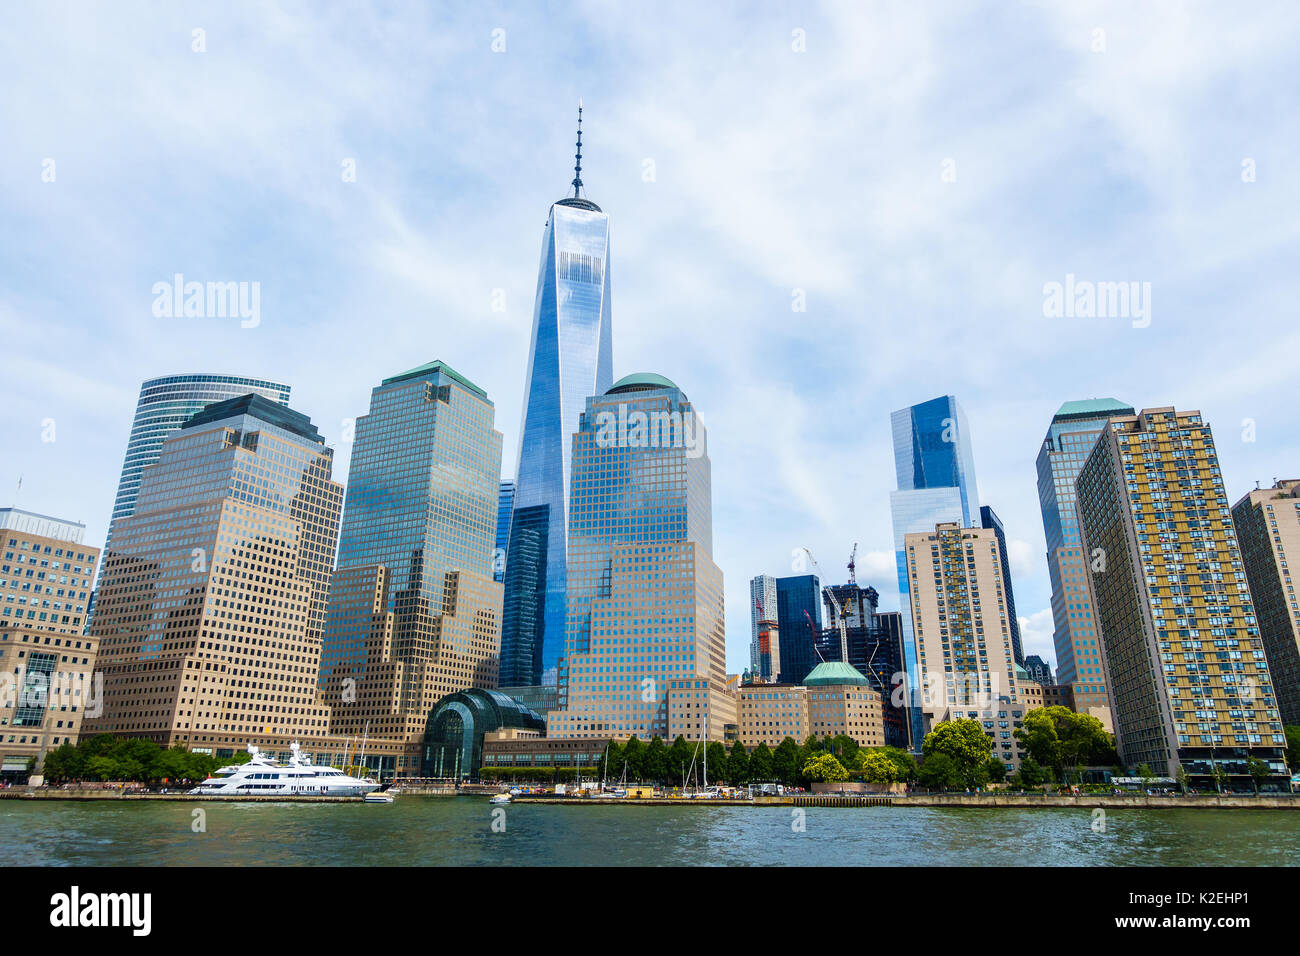 One World Trade Center in Lower Manhattan as seen from the Hudson river, New York City, USA - Stock Image